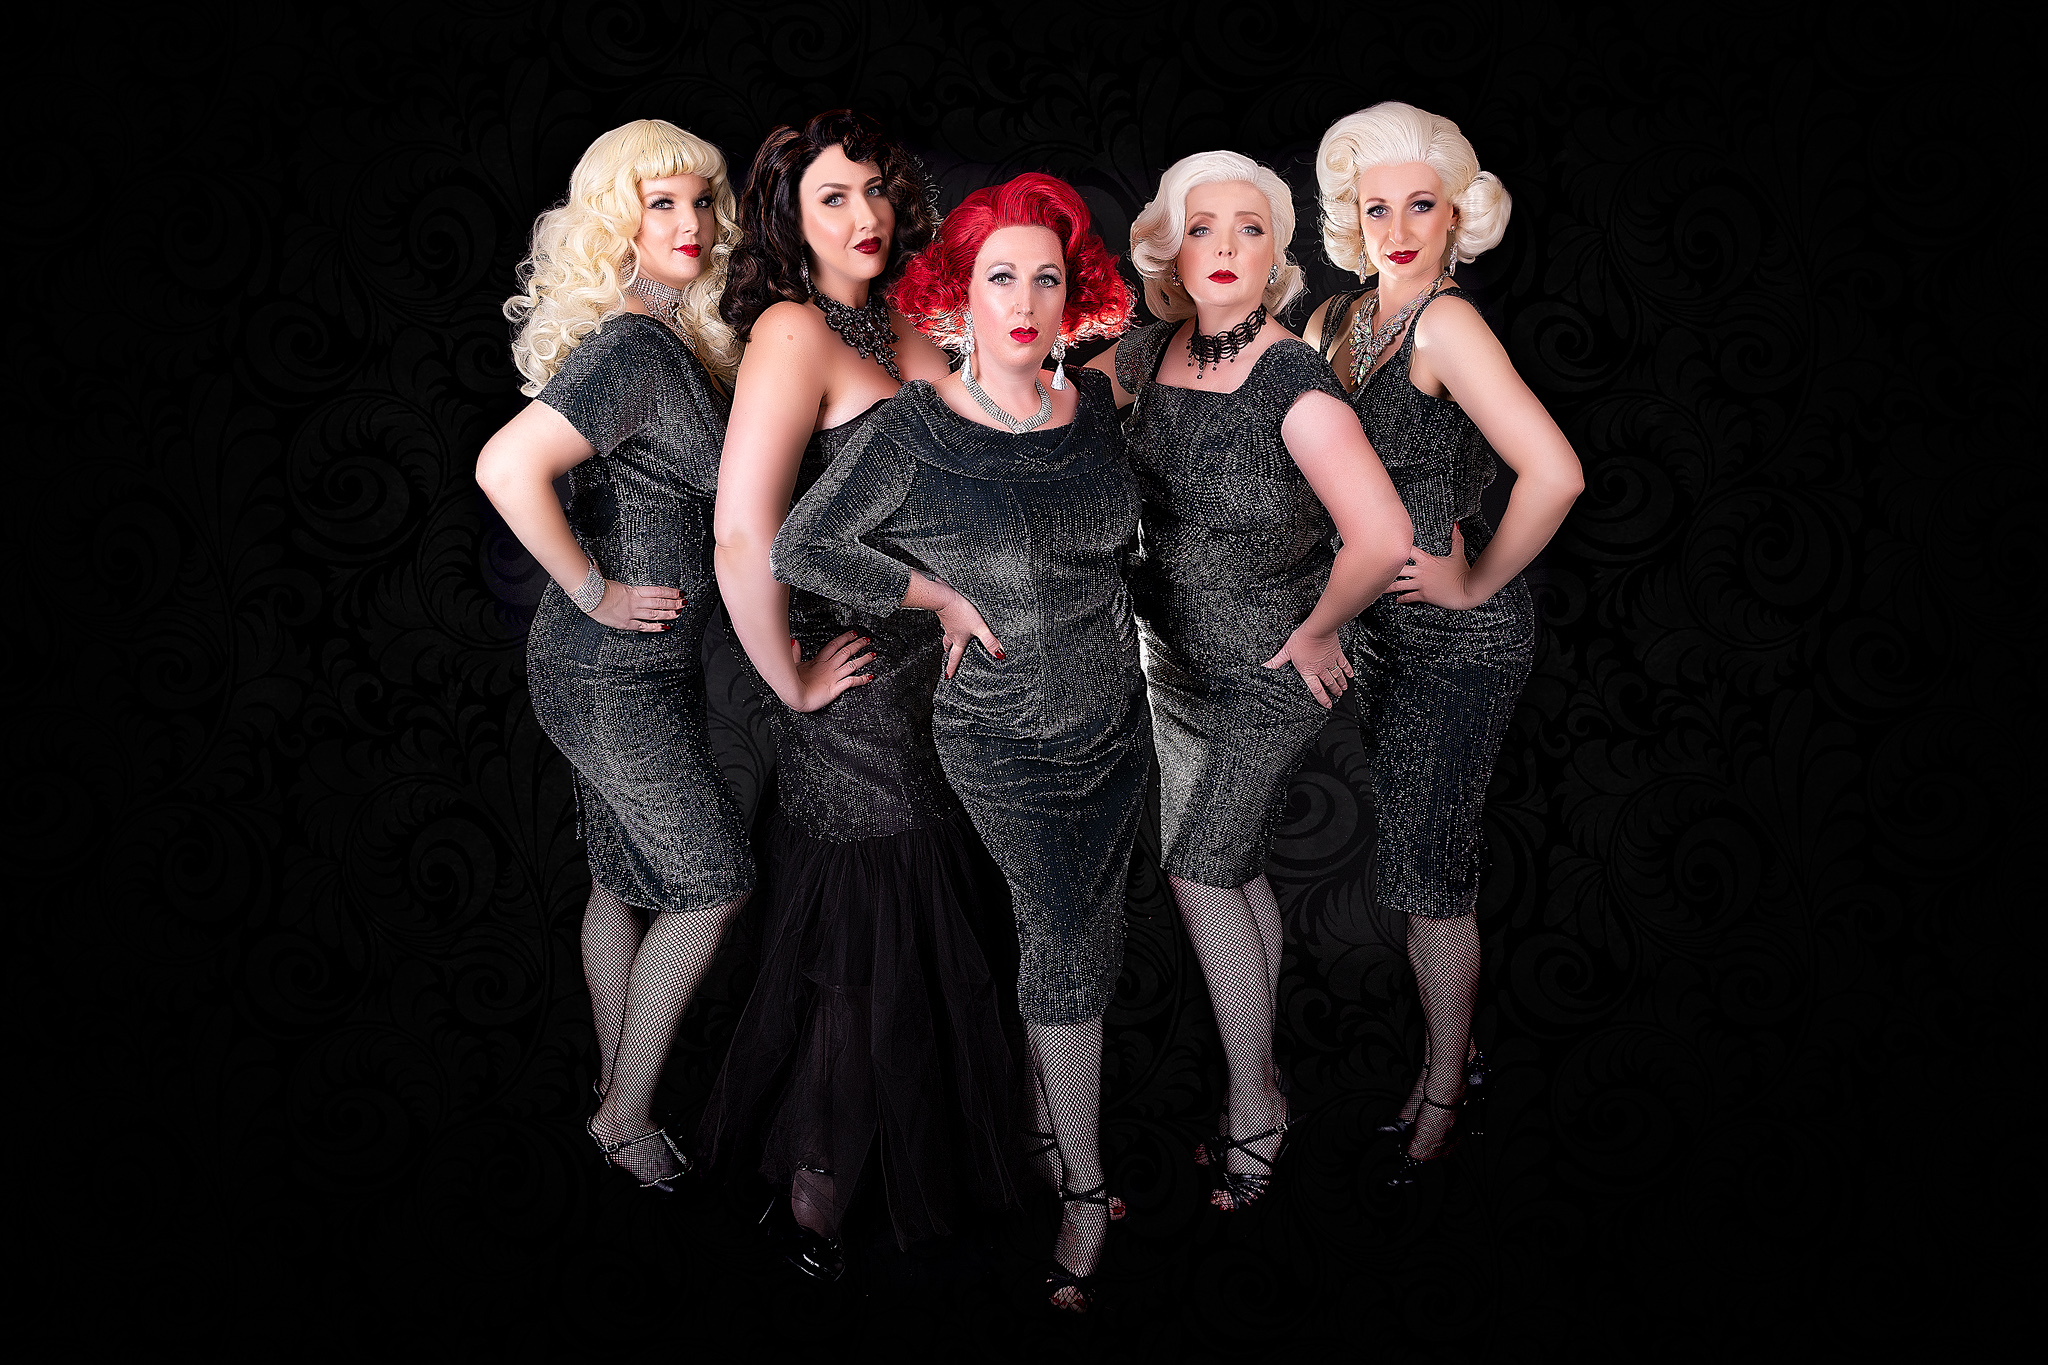 The Shimmy Showgirl Collective